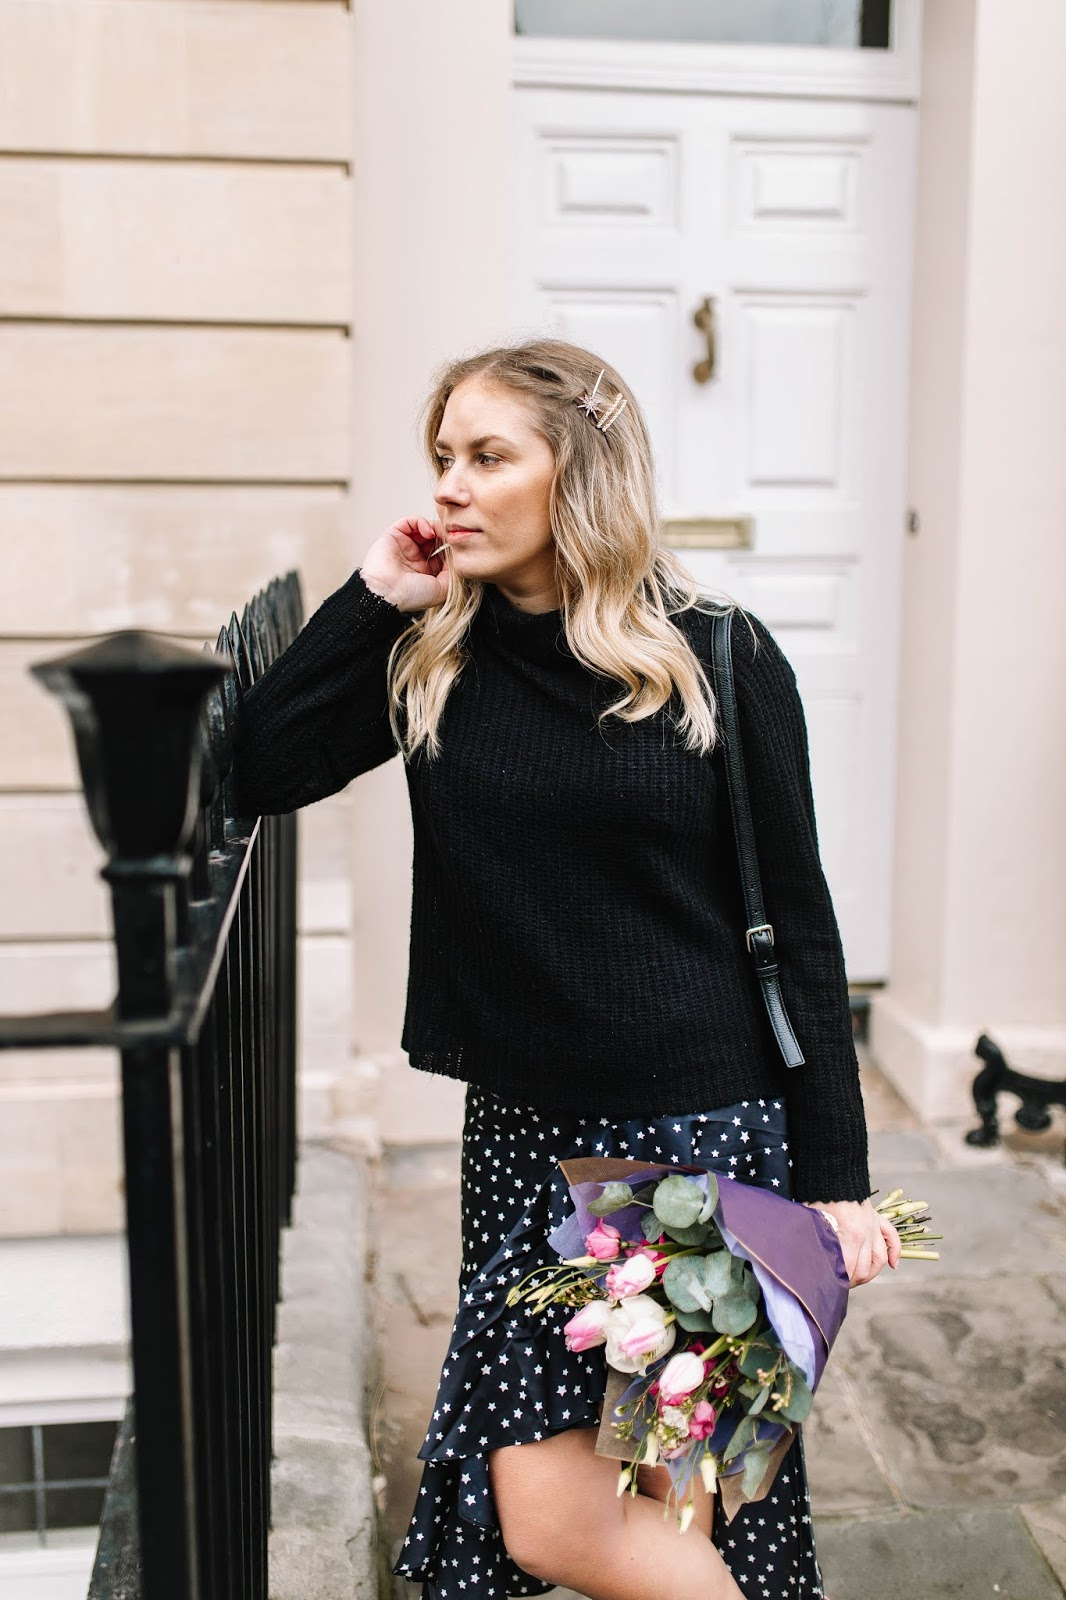 Lifestyle | How I'm Changing my Life Before I'm 30 - Rachel Emily Blog